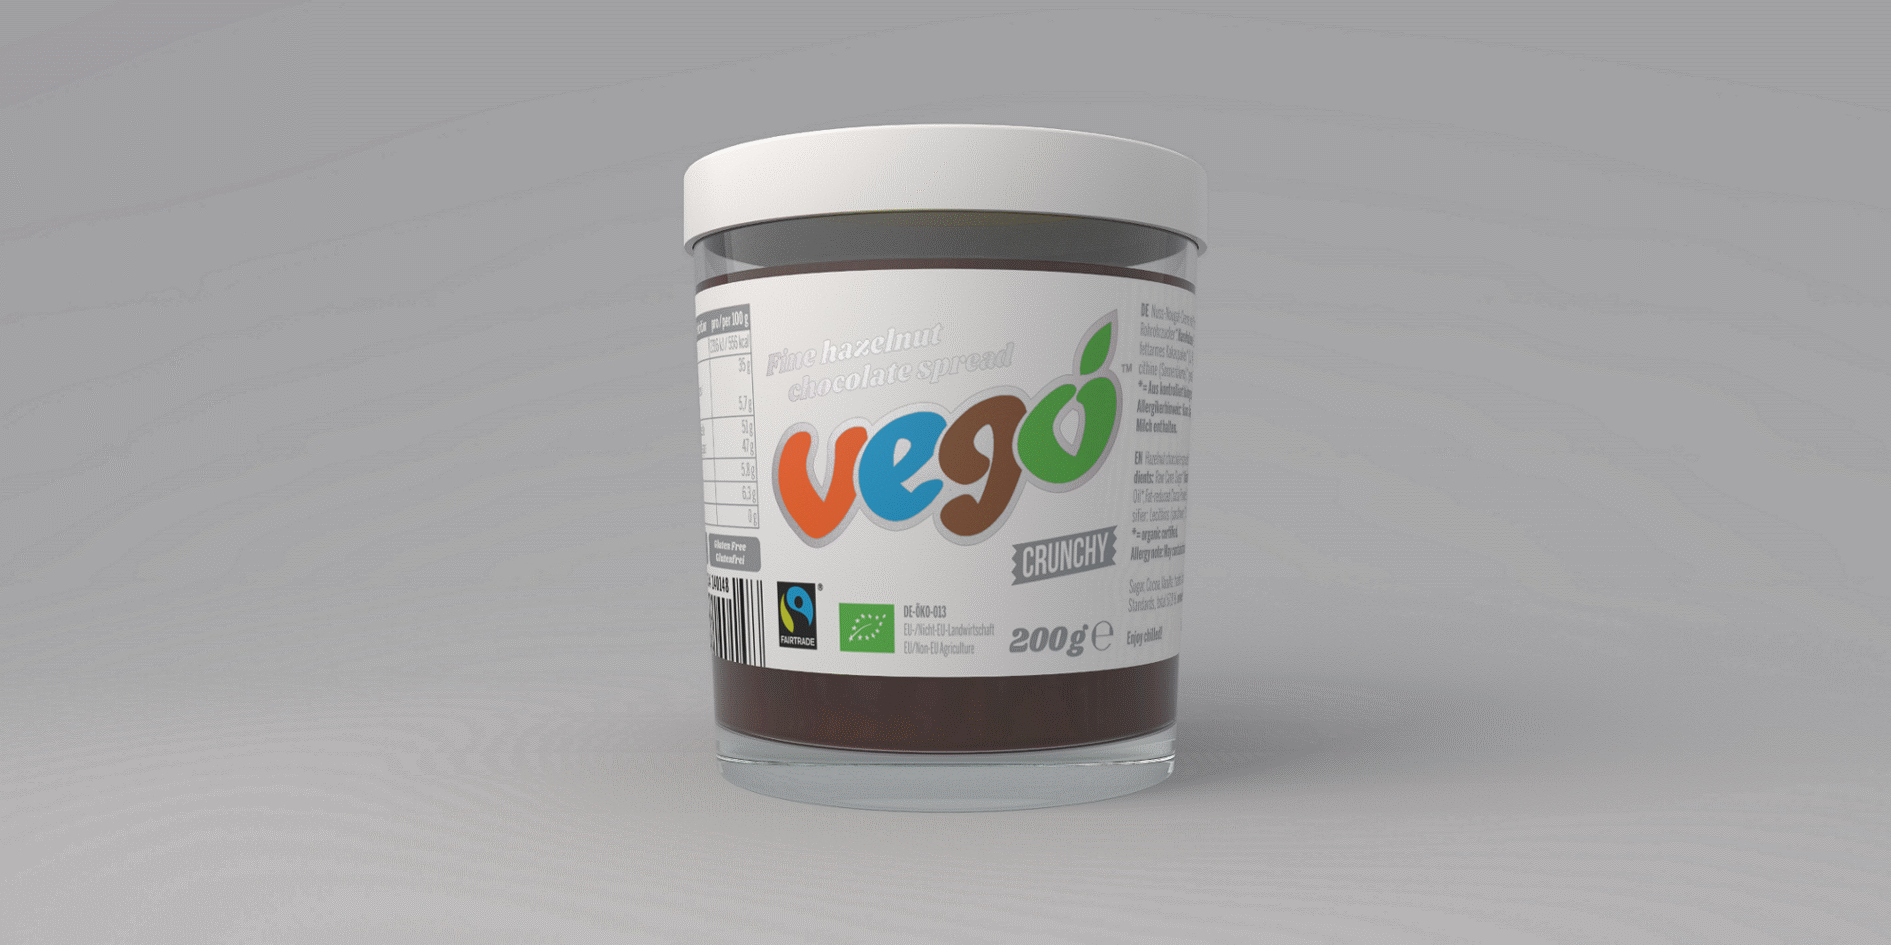 Vego Hazelnut Chocolate Spread (Crunchy)